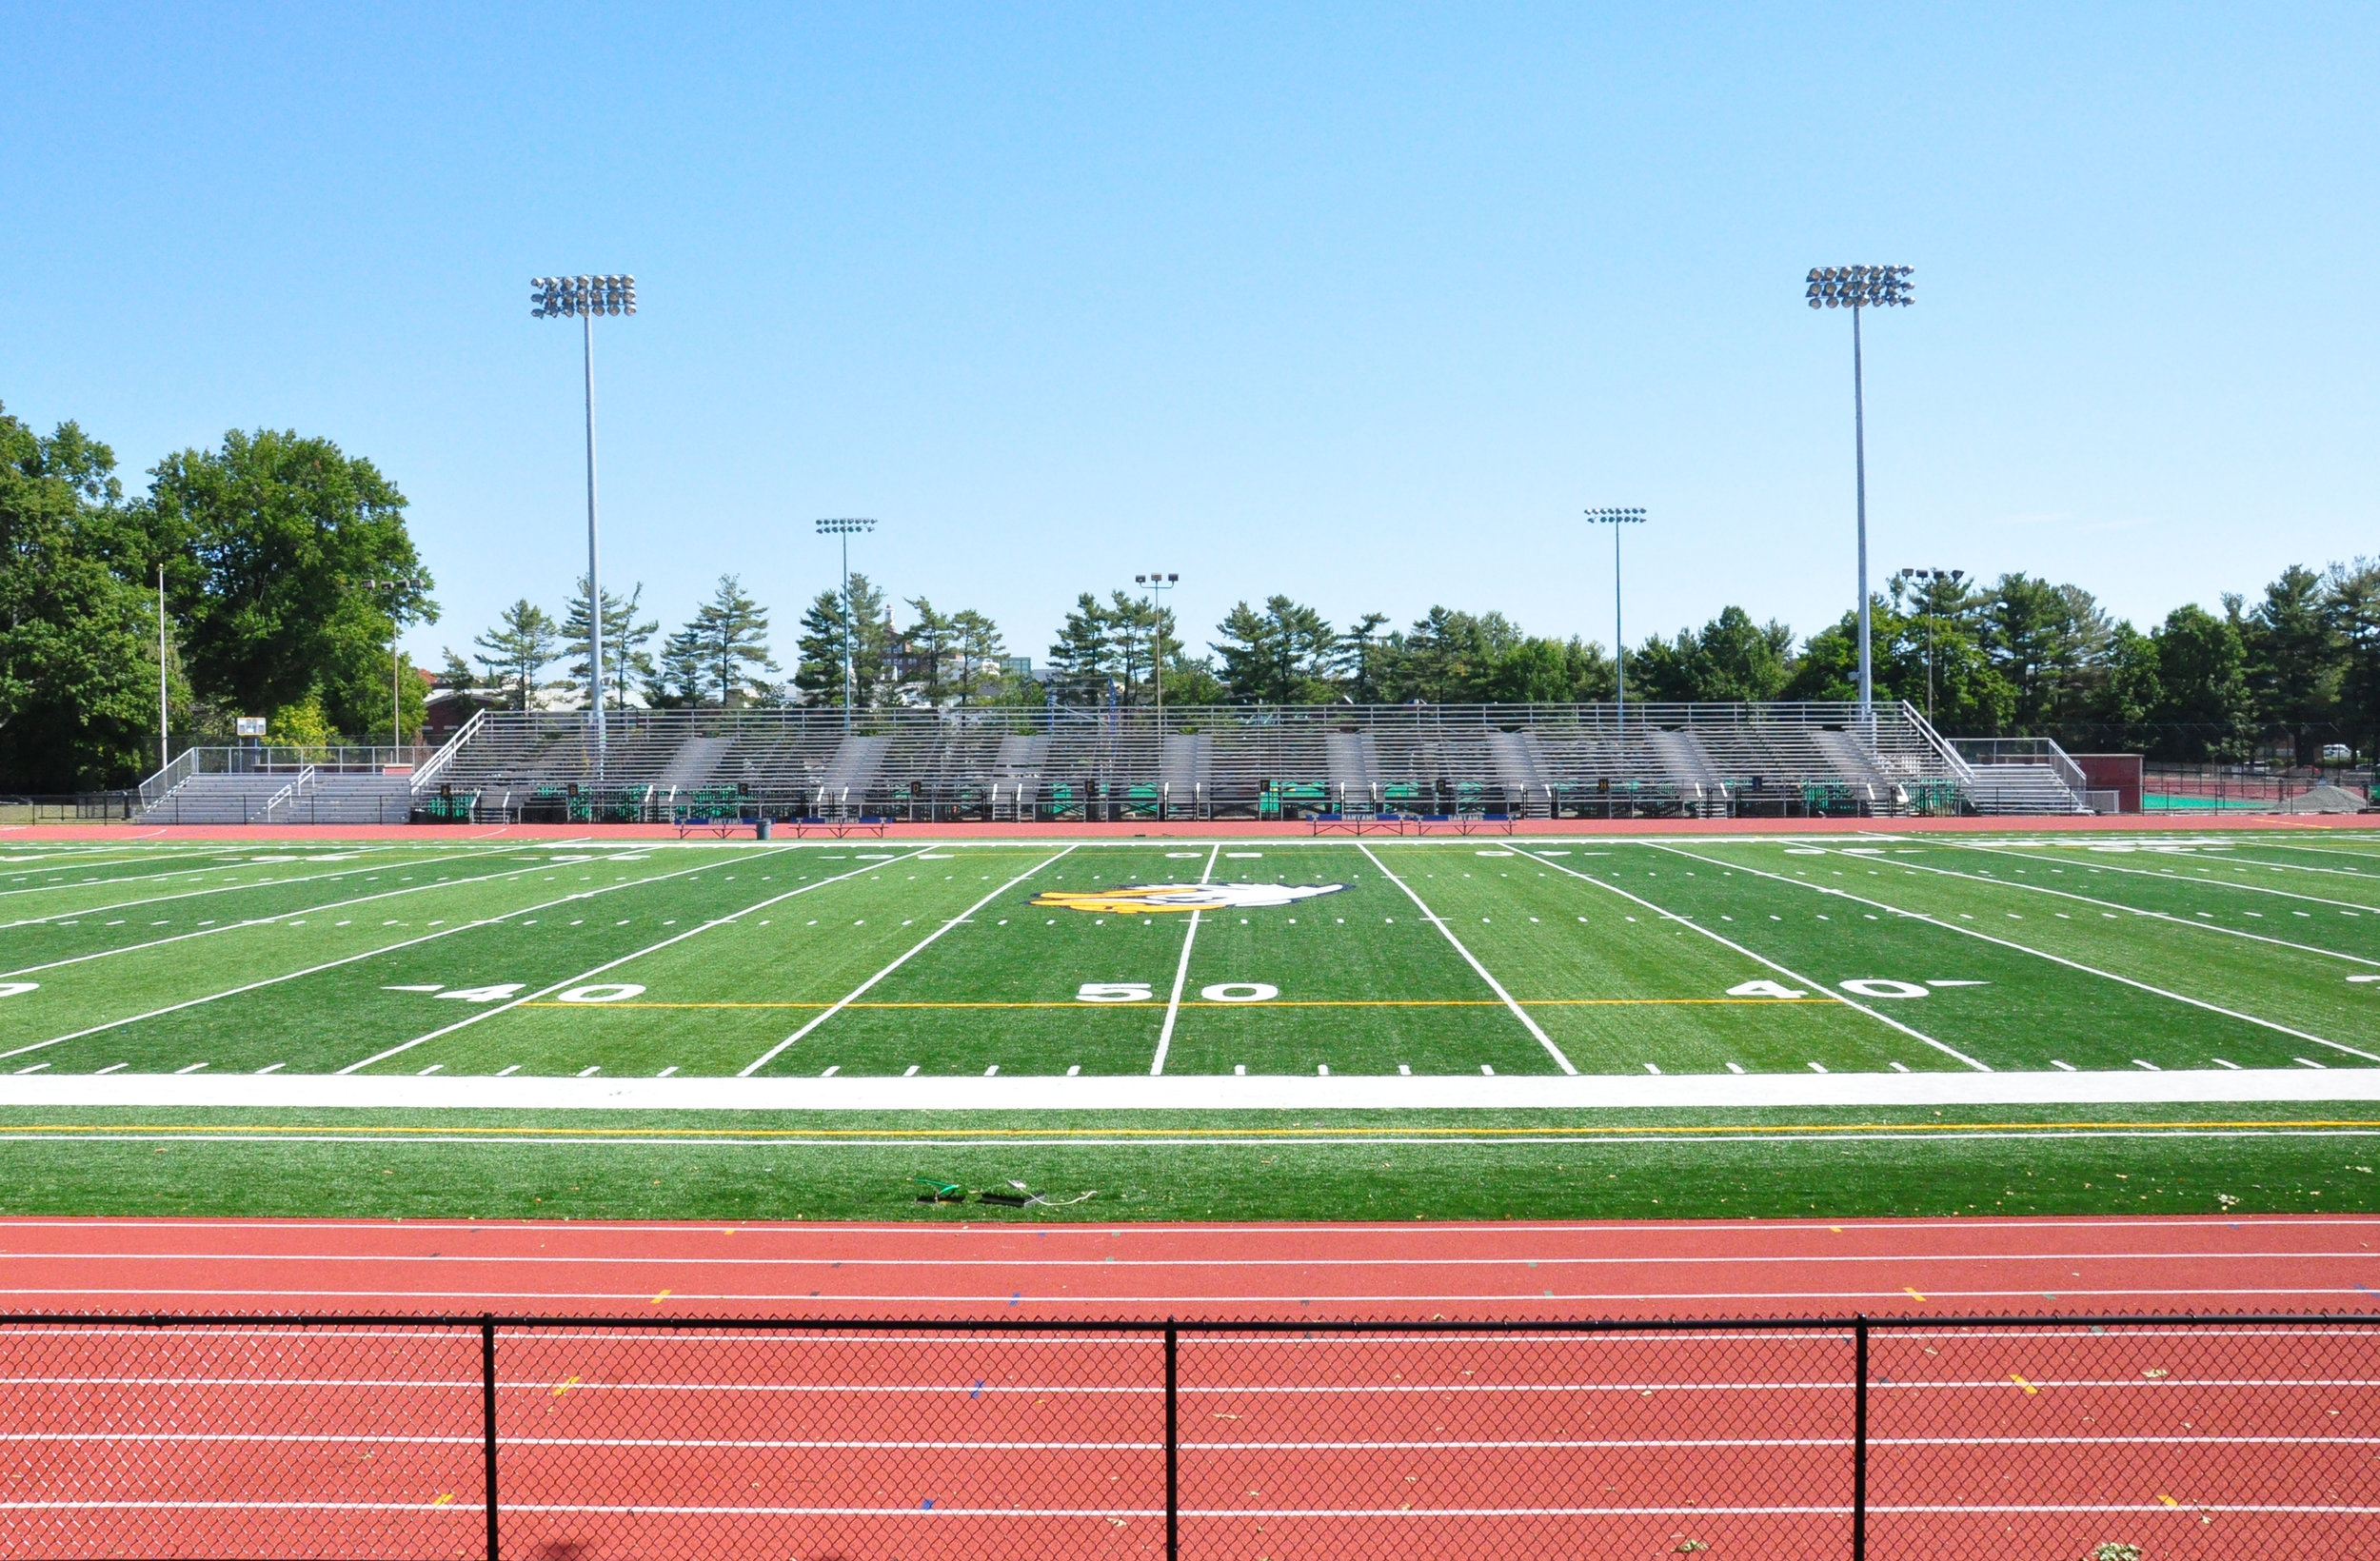 In 2016, the Coop's playing surface was replaced with an all-weather Field Turf field. Additionally, four new Musco light towers provide 50-foot candles of light to the field.